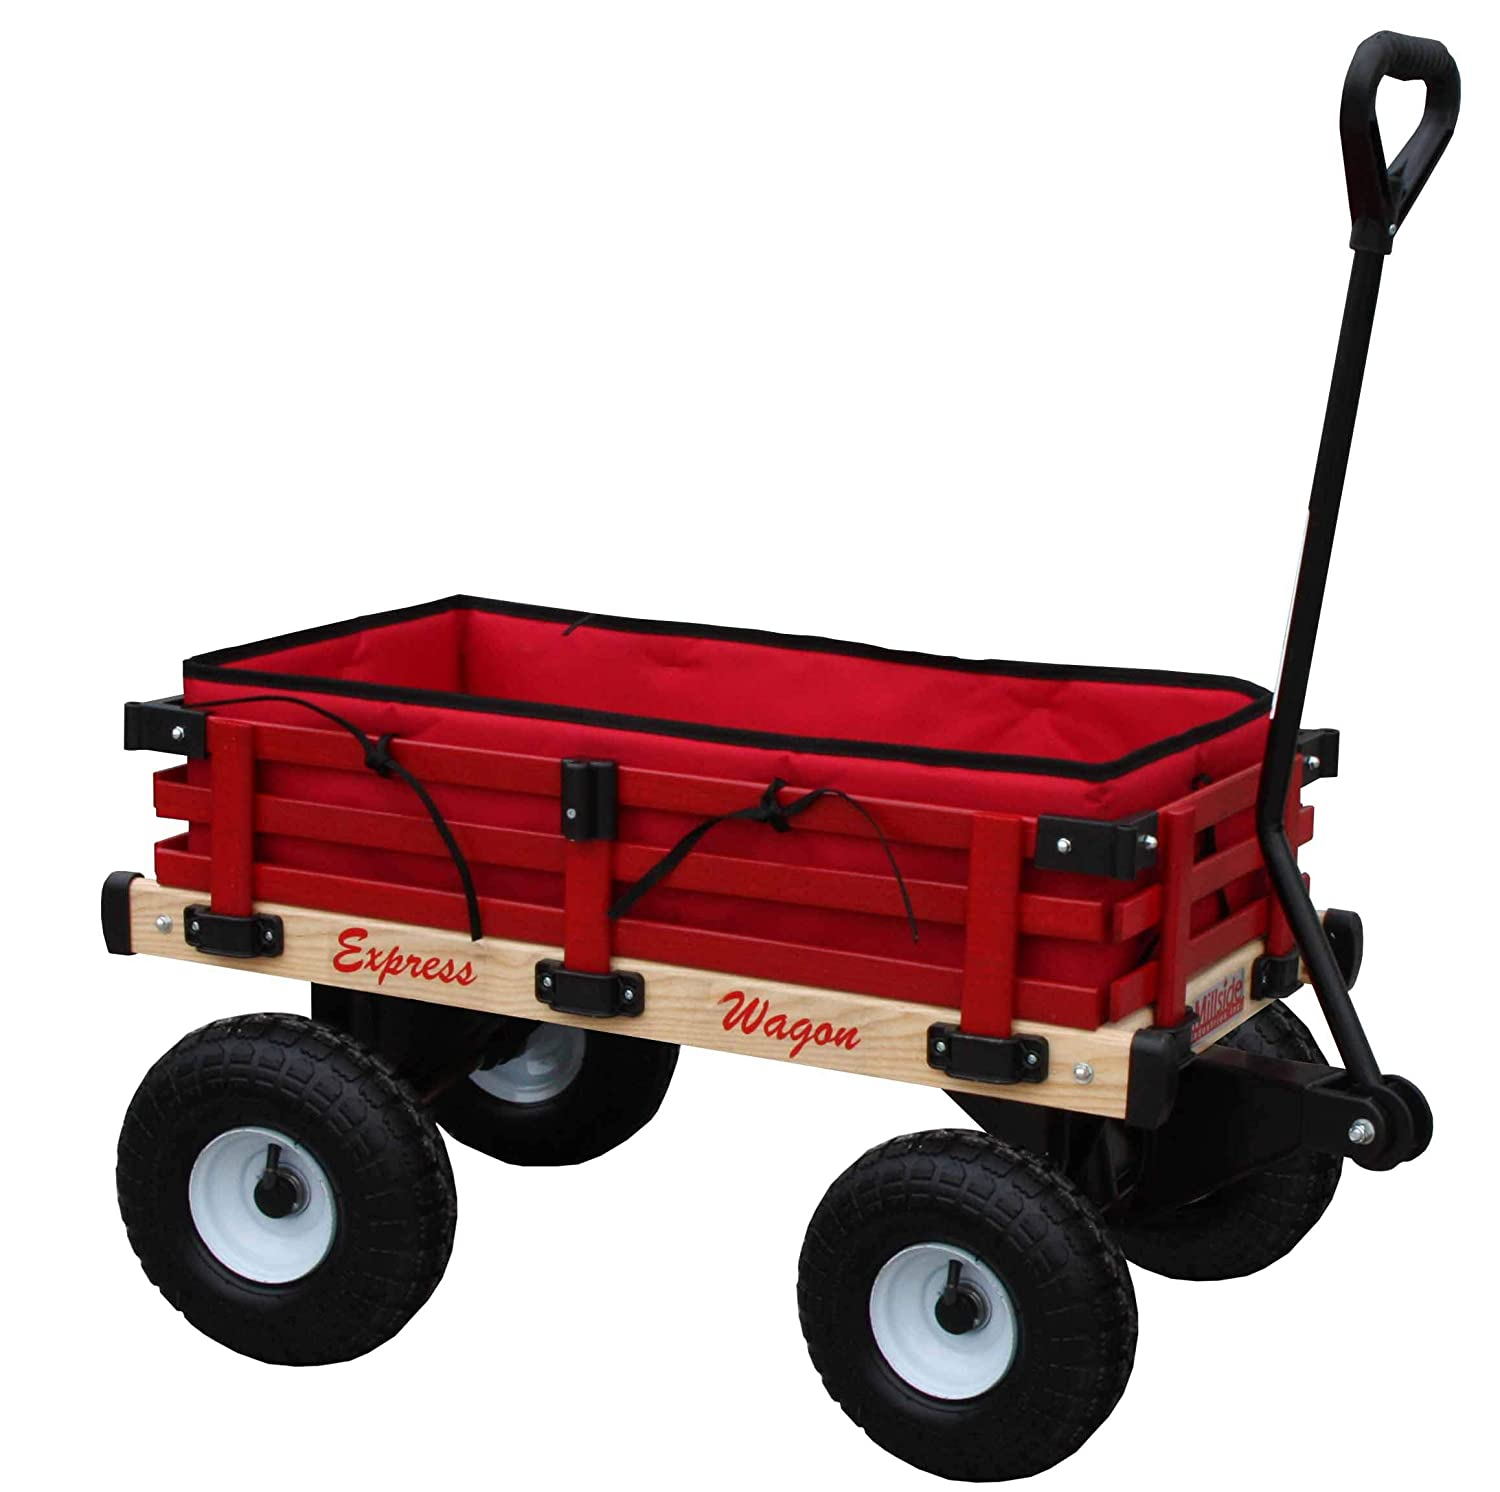 Amazon.com: Millside Industries Wagon Express de madera con ...